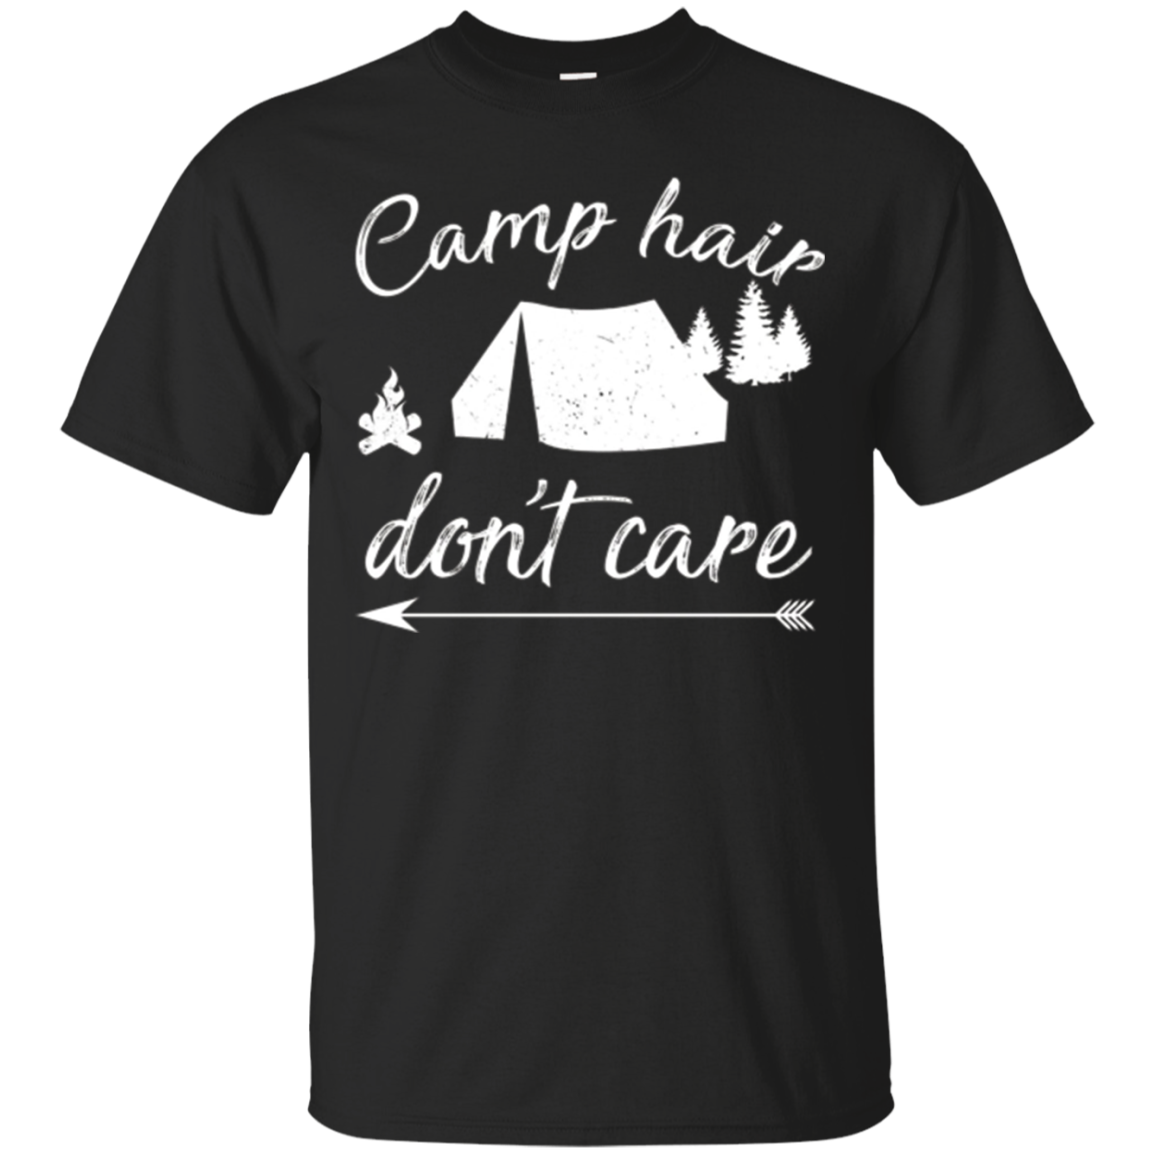 Camp Hair Don't Care T-Shirt - Funny Camping Shirt